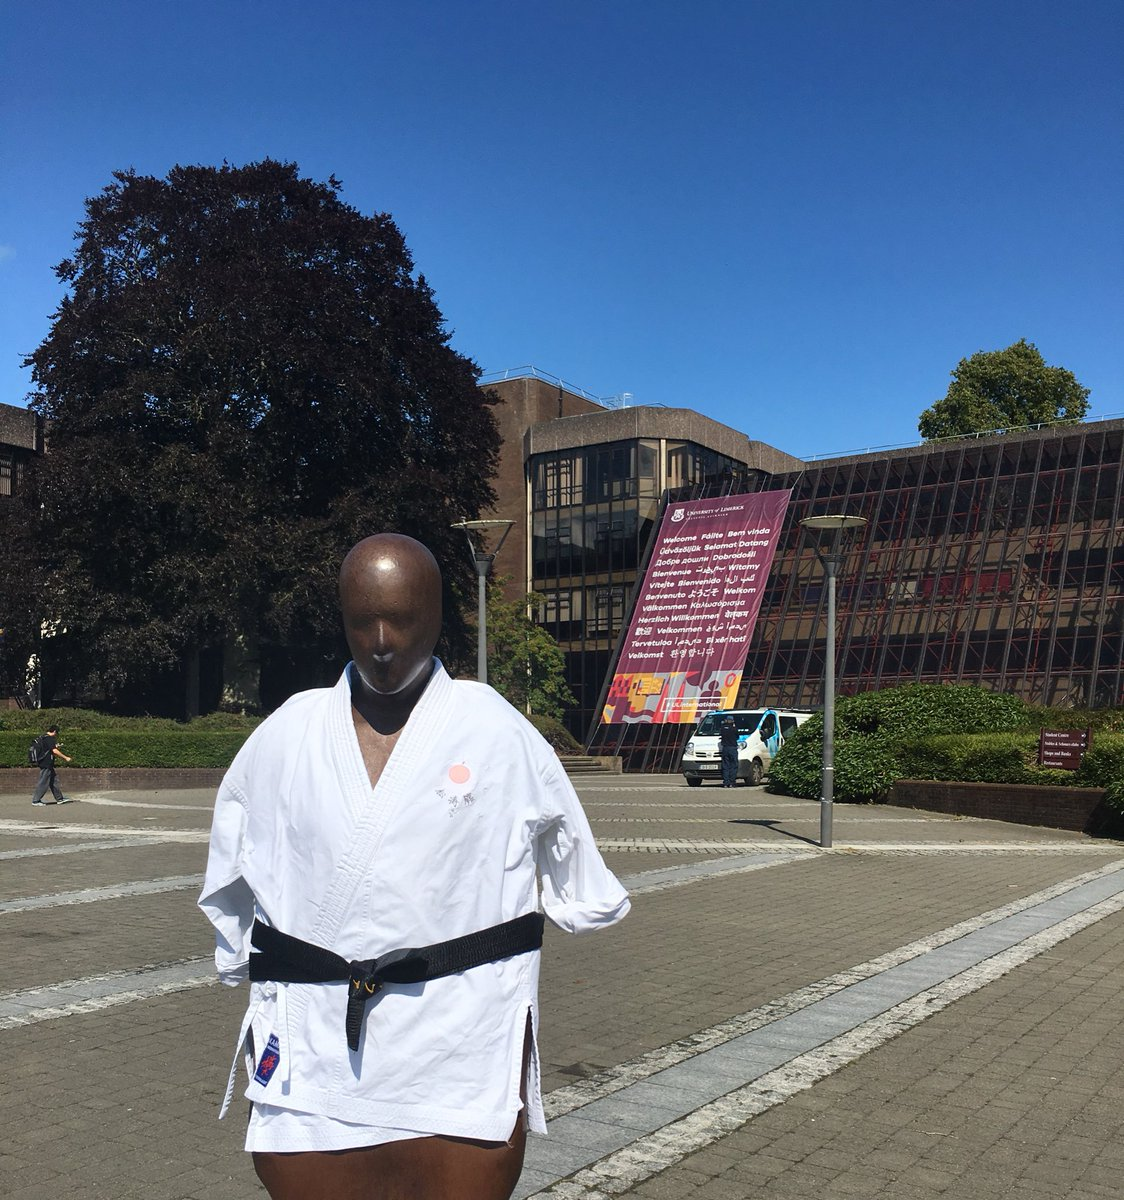 Brown thomas is all ready for the 14th World Karate-do Championships which are being held in @ULimsport Arena this week. #ThinkBigAtUL <br>http://pic.twitter.com/uMYB0P7Msz